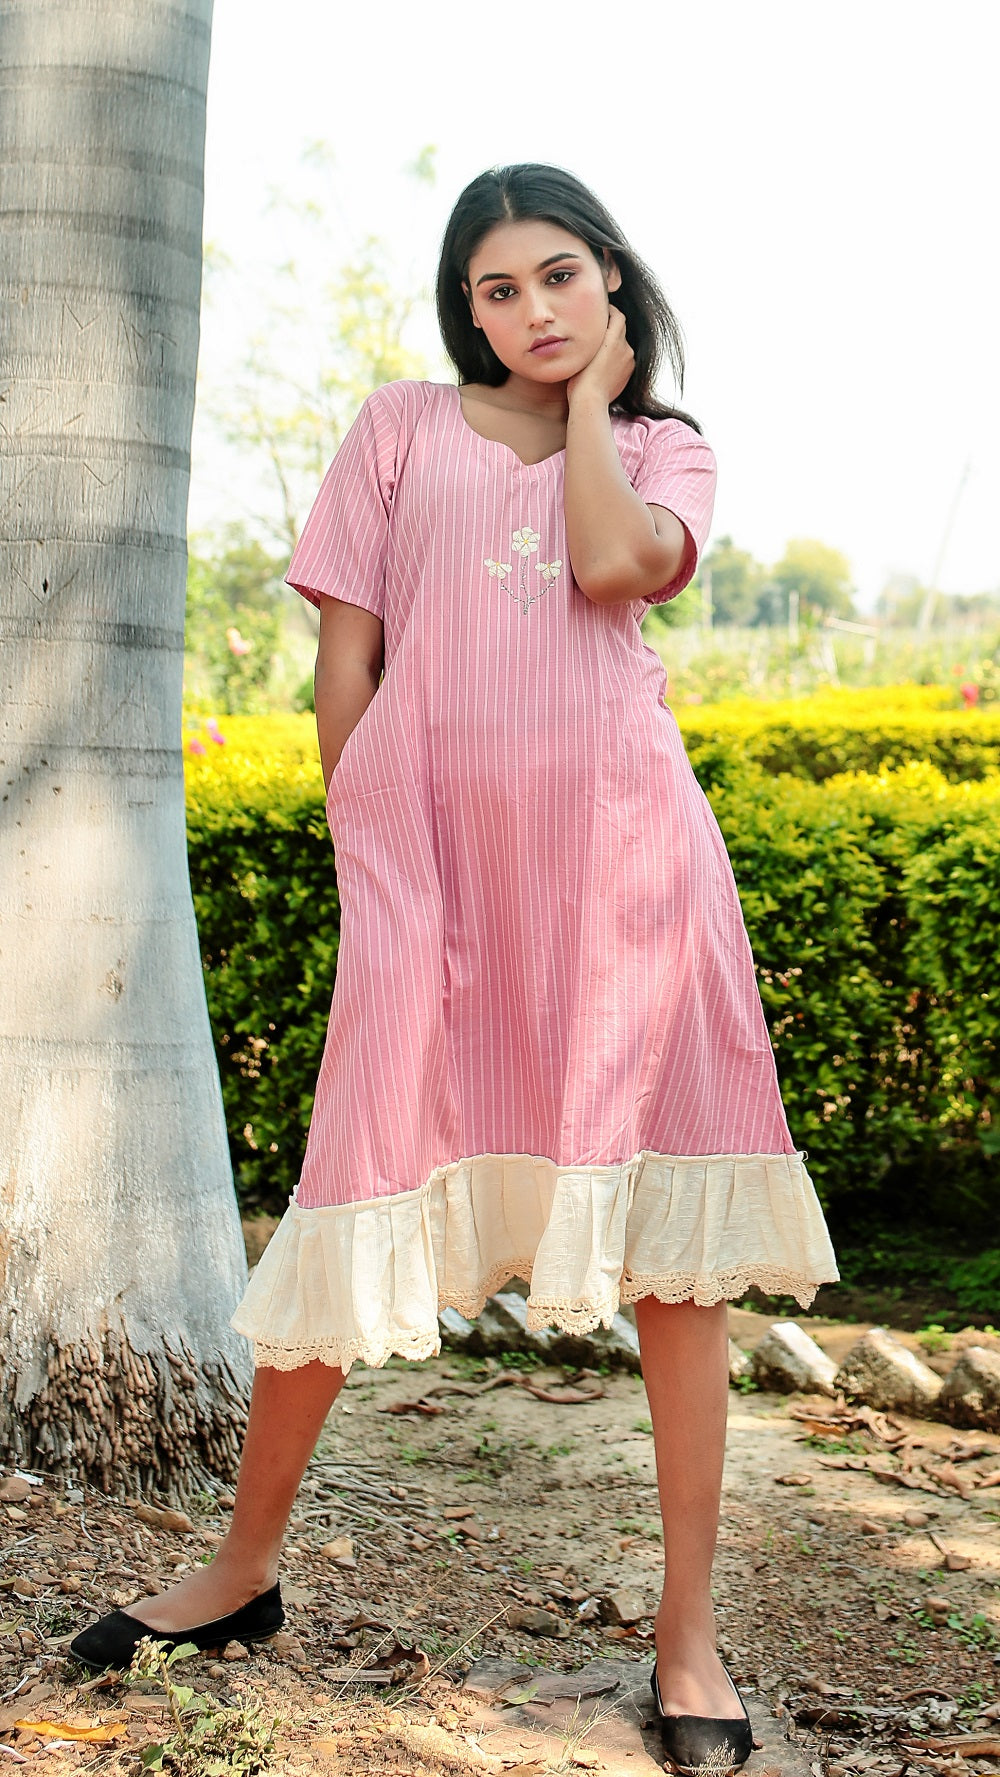 A line Striped Masakali Dress online at bebaakstudio.com